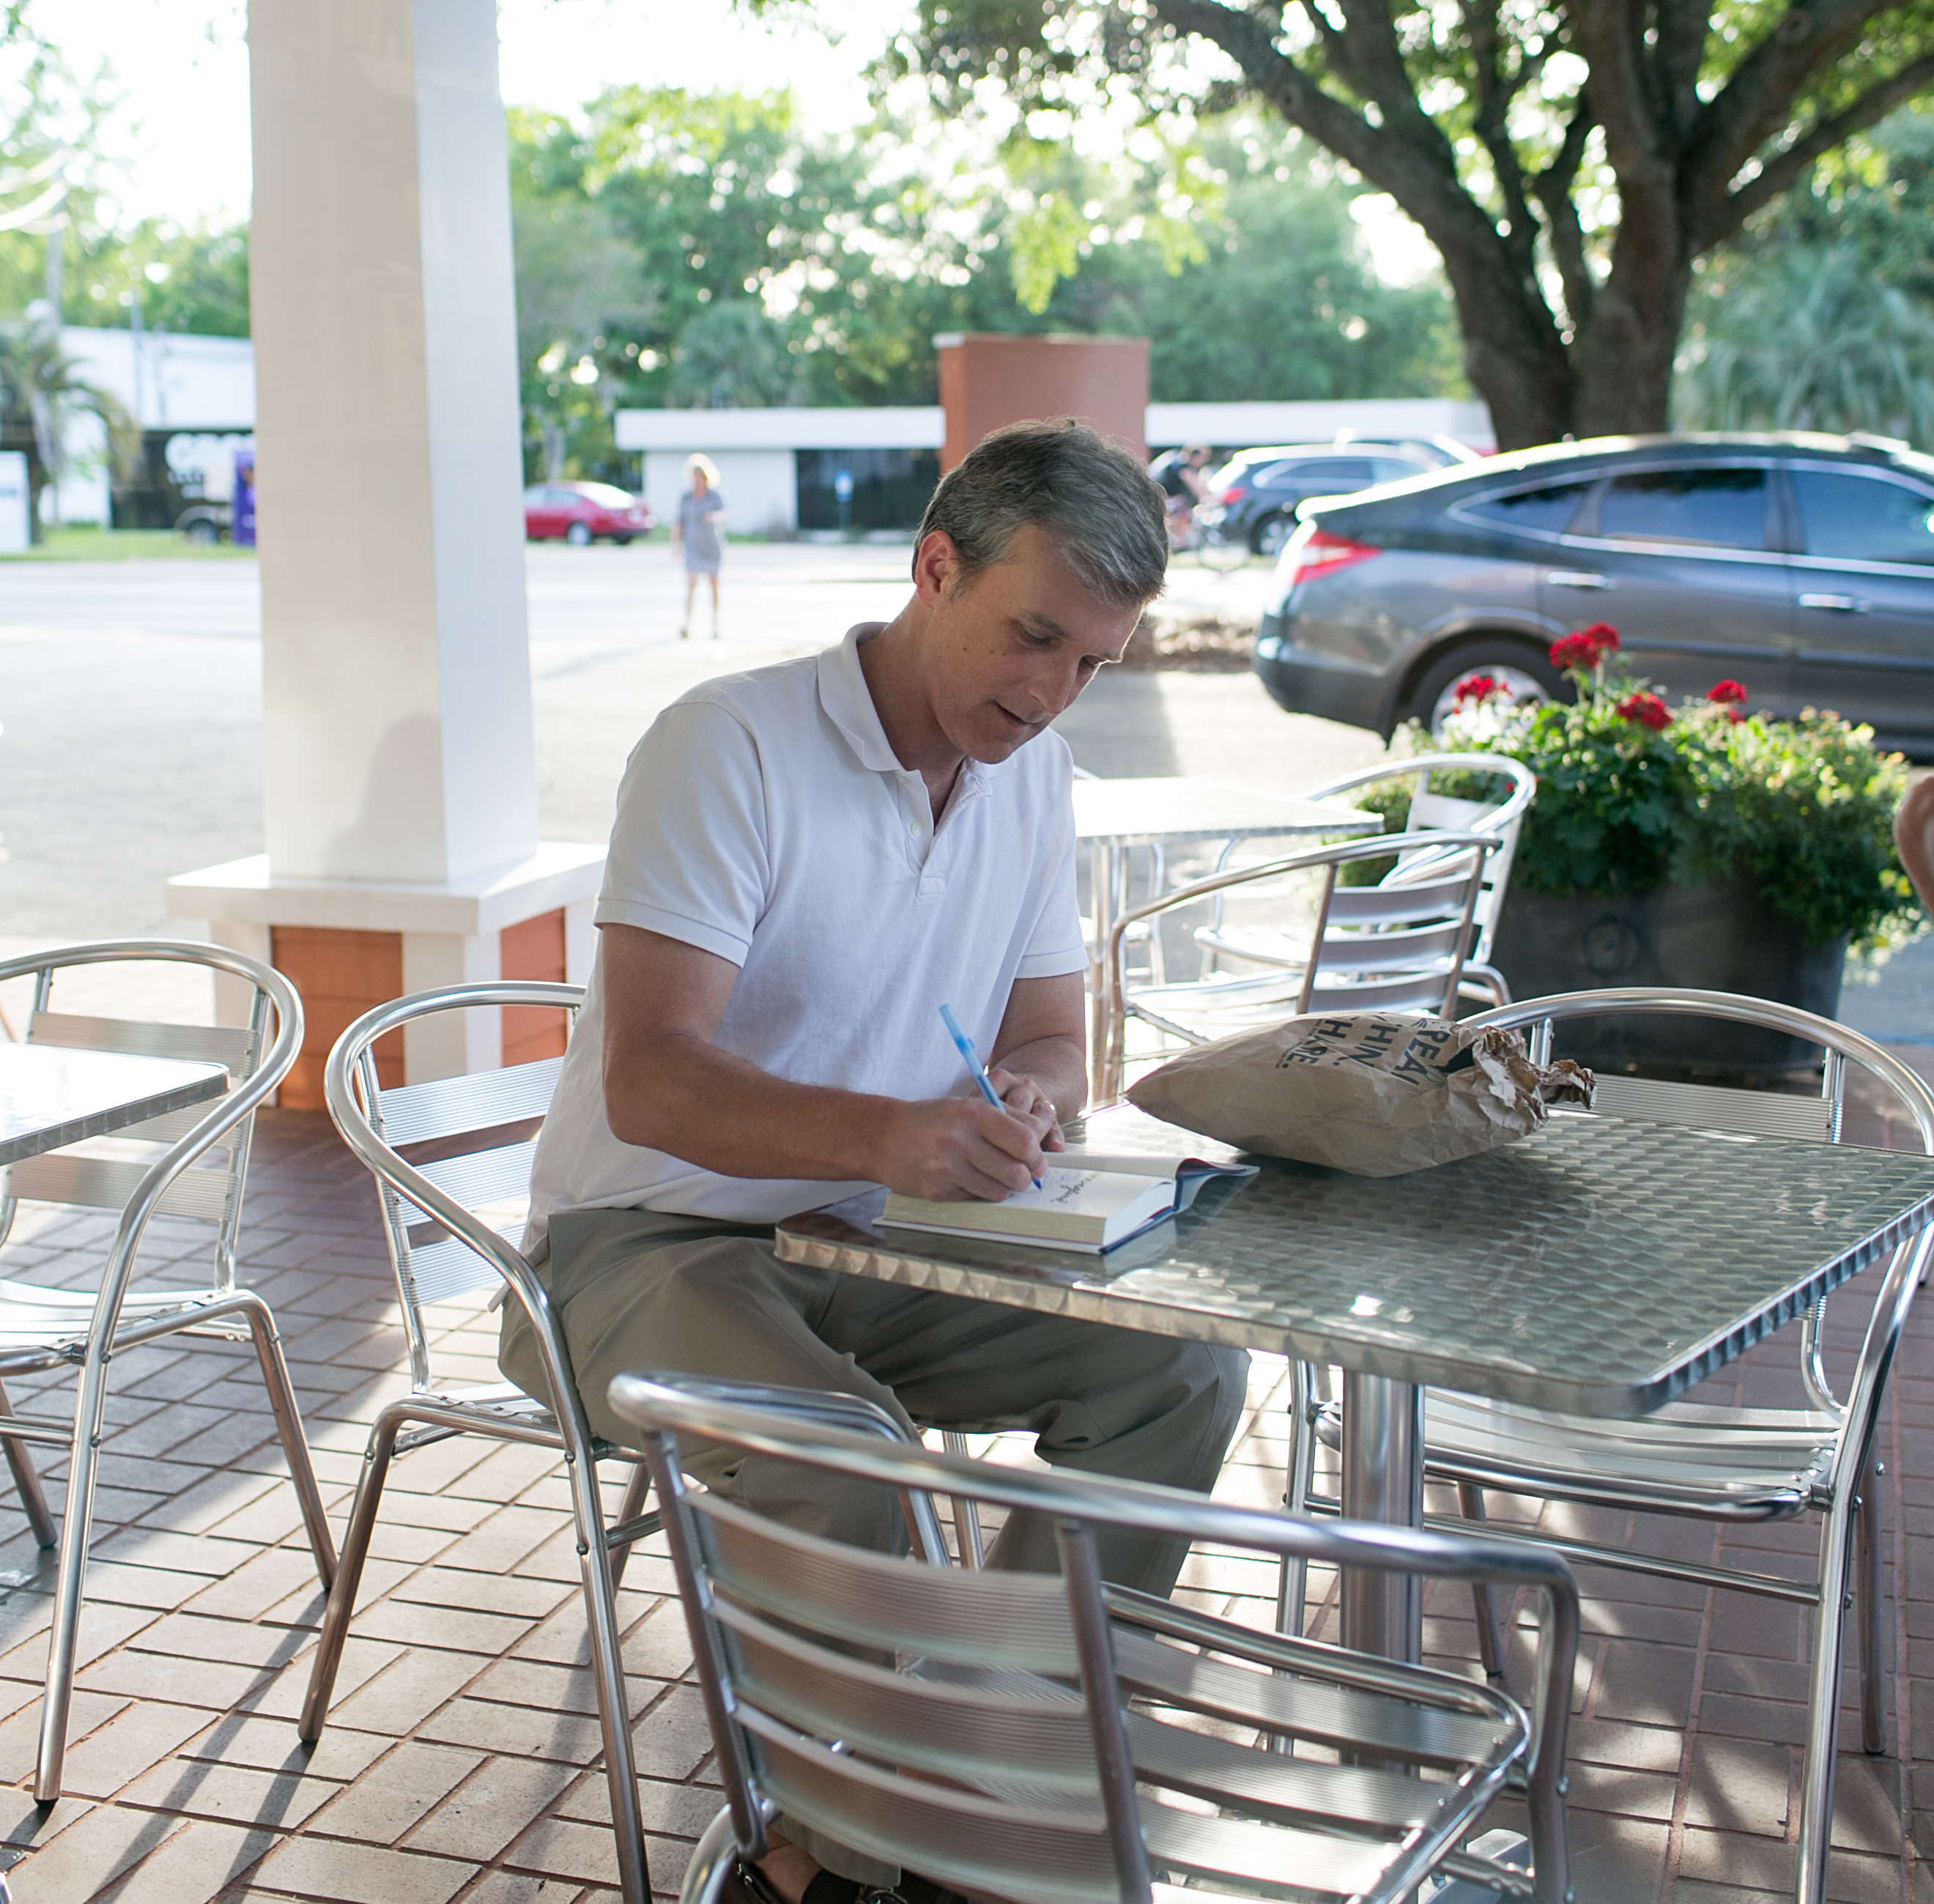 midtown_reader_tallahassee_photographer_shannon_griffin-191